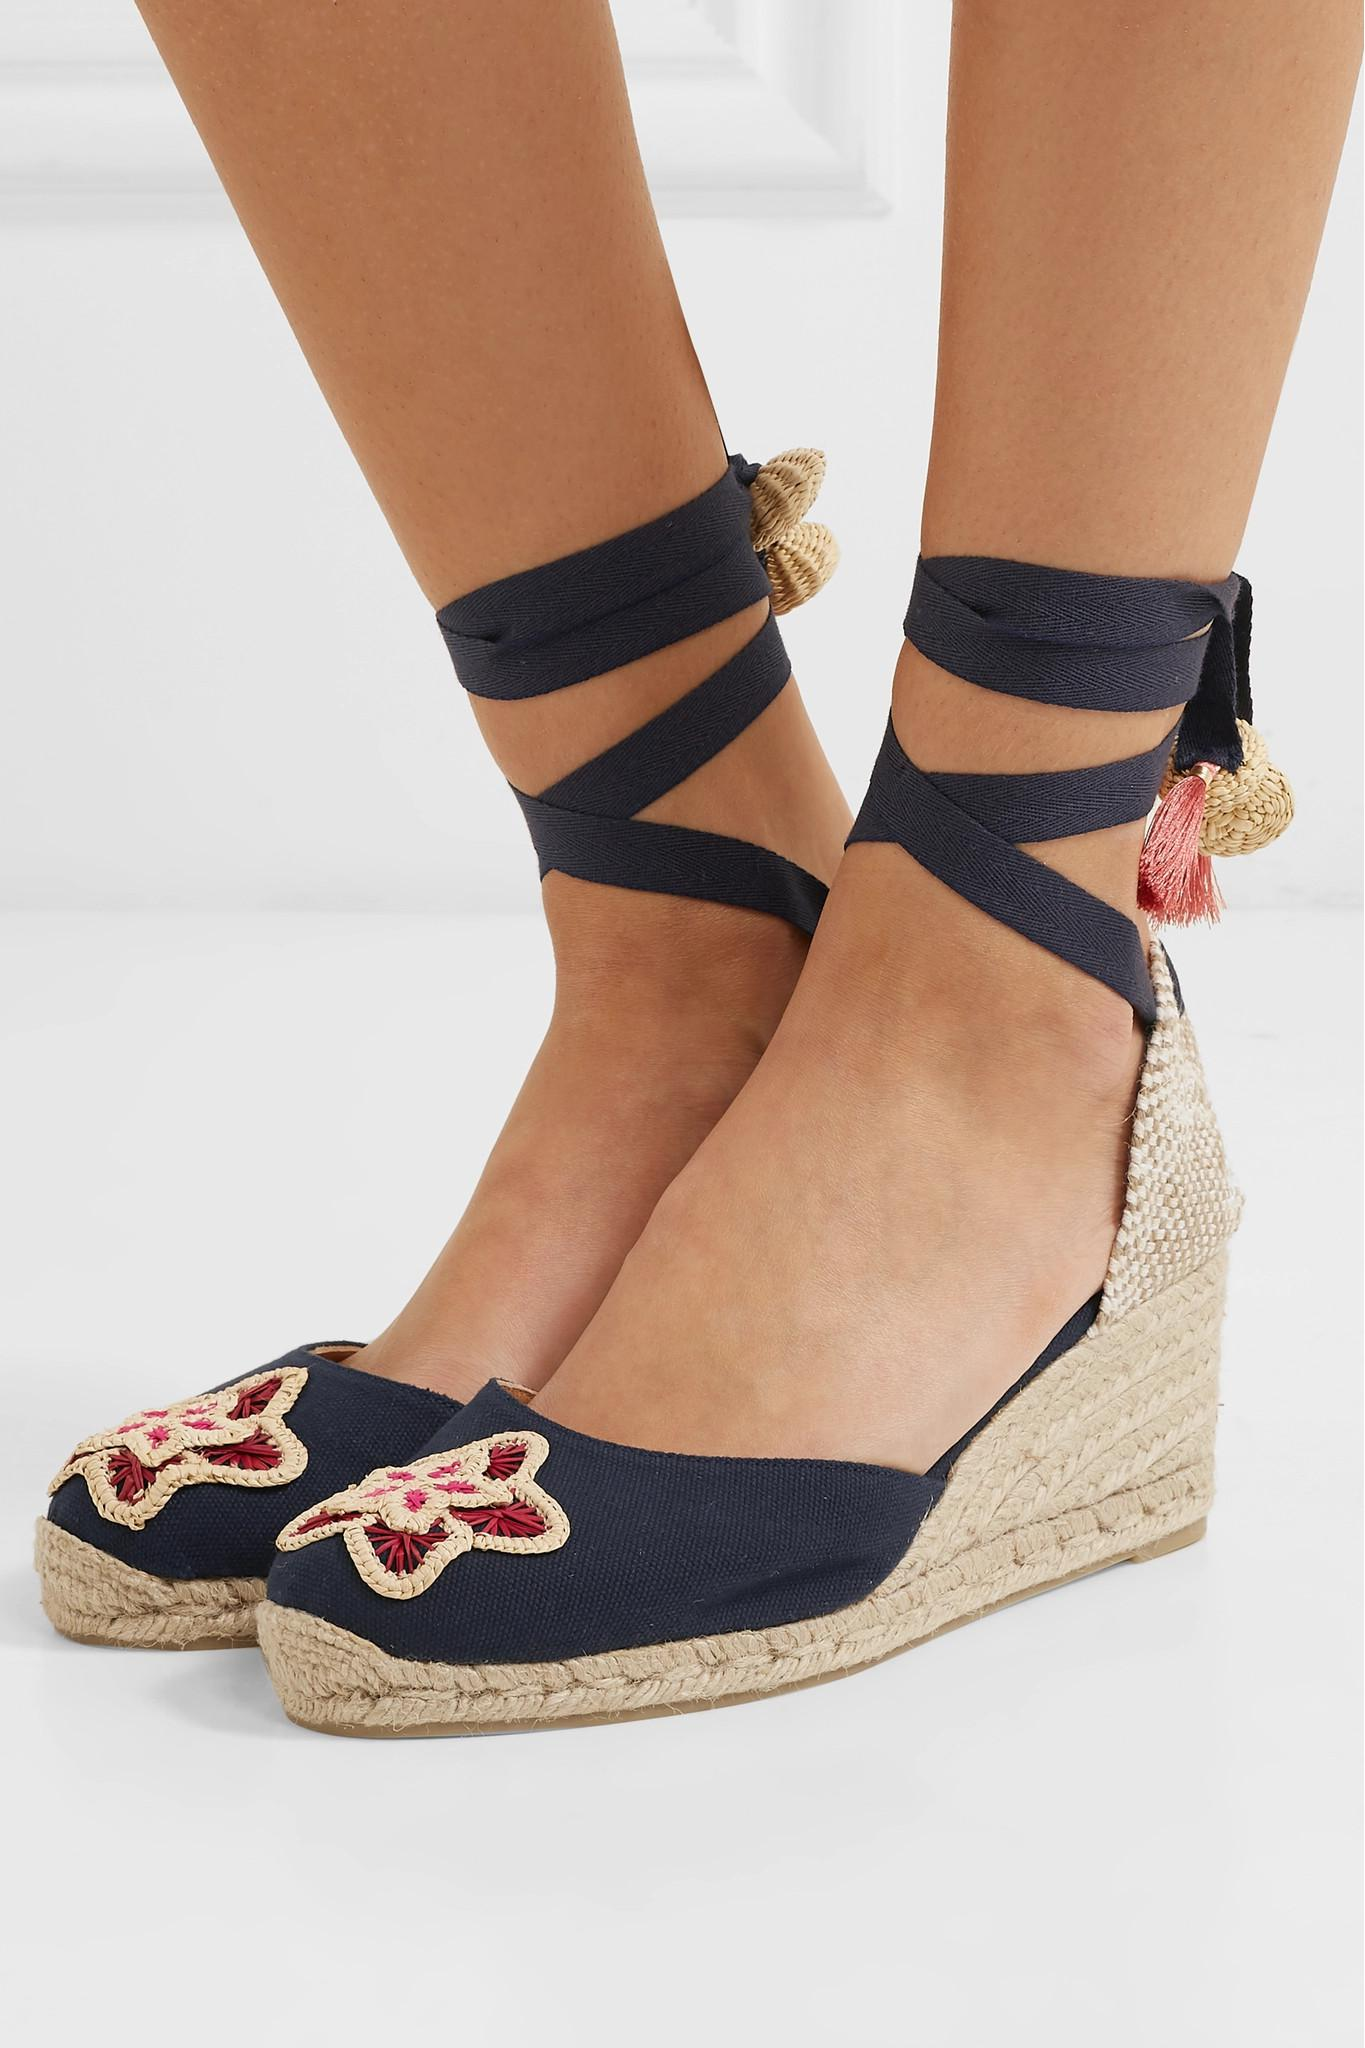 10976efeb15 Lyst - Castaner + Mercedes Salazar Carina 60 Embroidered Canvas ...